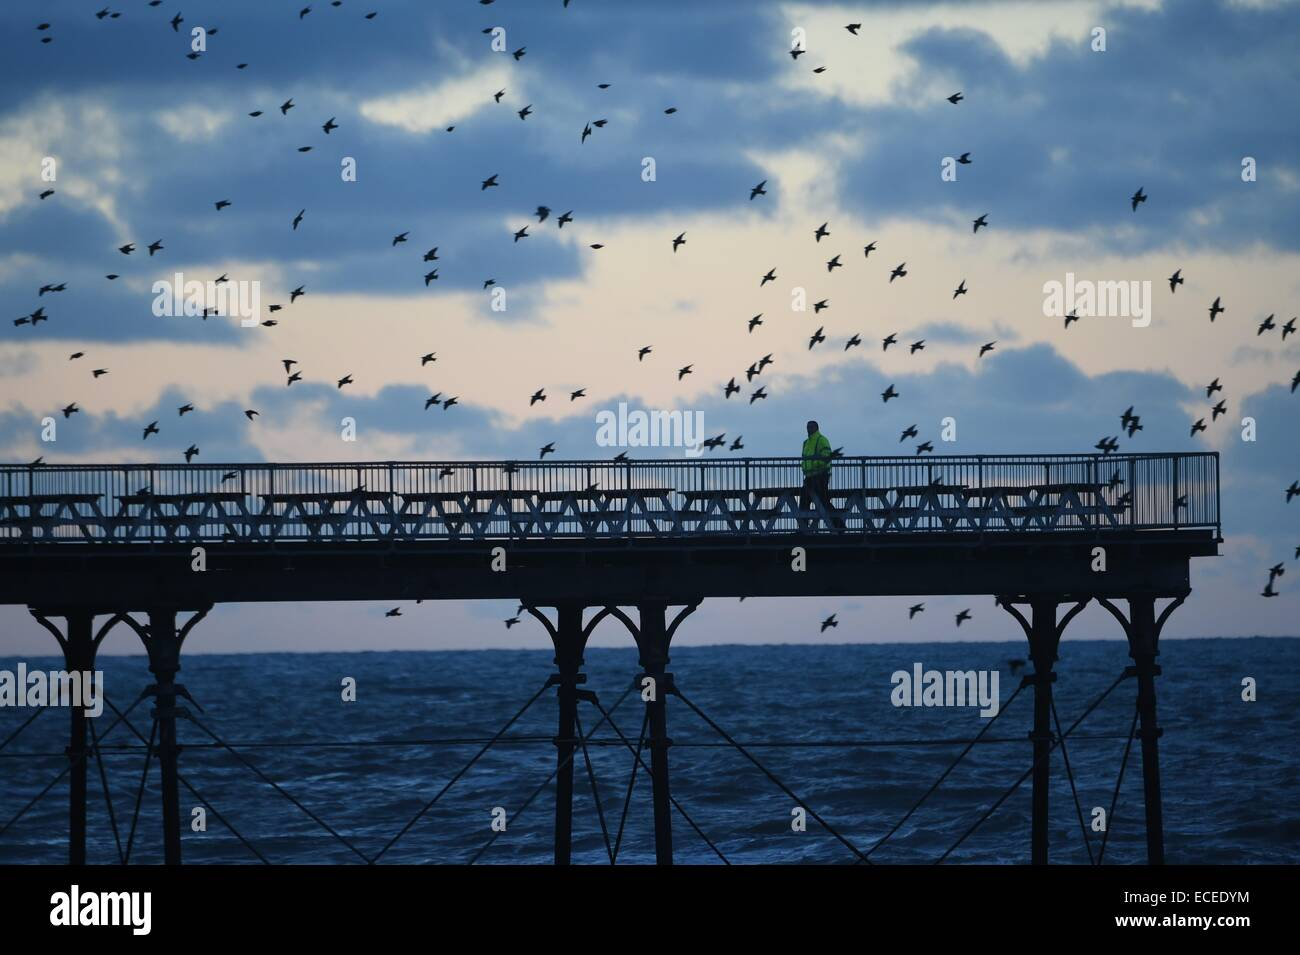 Aberystwyth, Wales, UK. 12th December, 2014.  Starlings fly in to roost for the night on Aberystwyth pier. A member - Stock Image